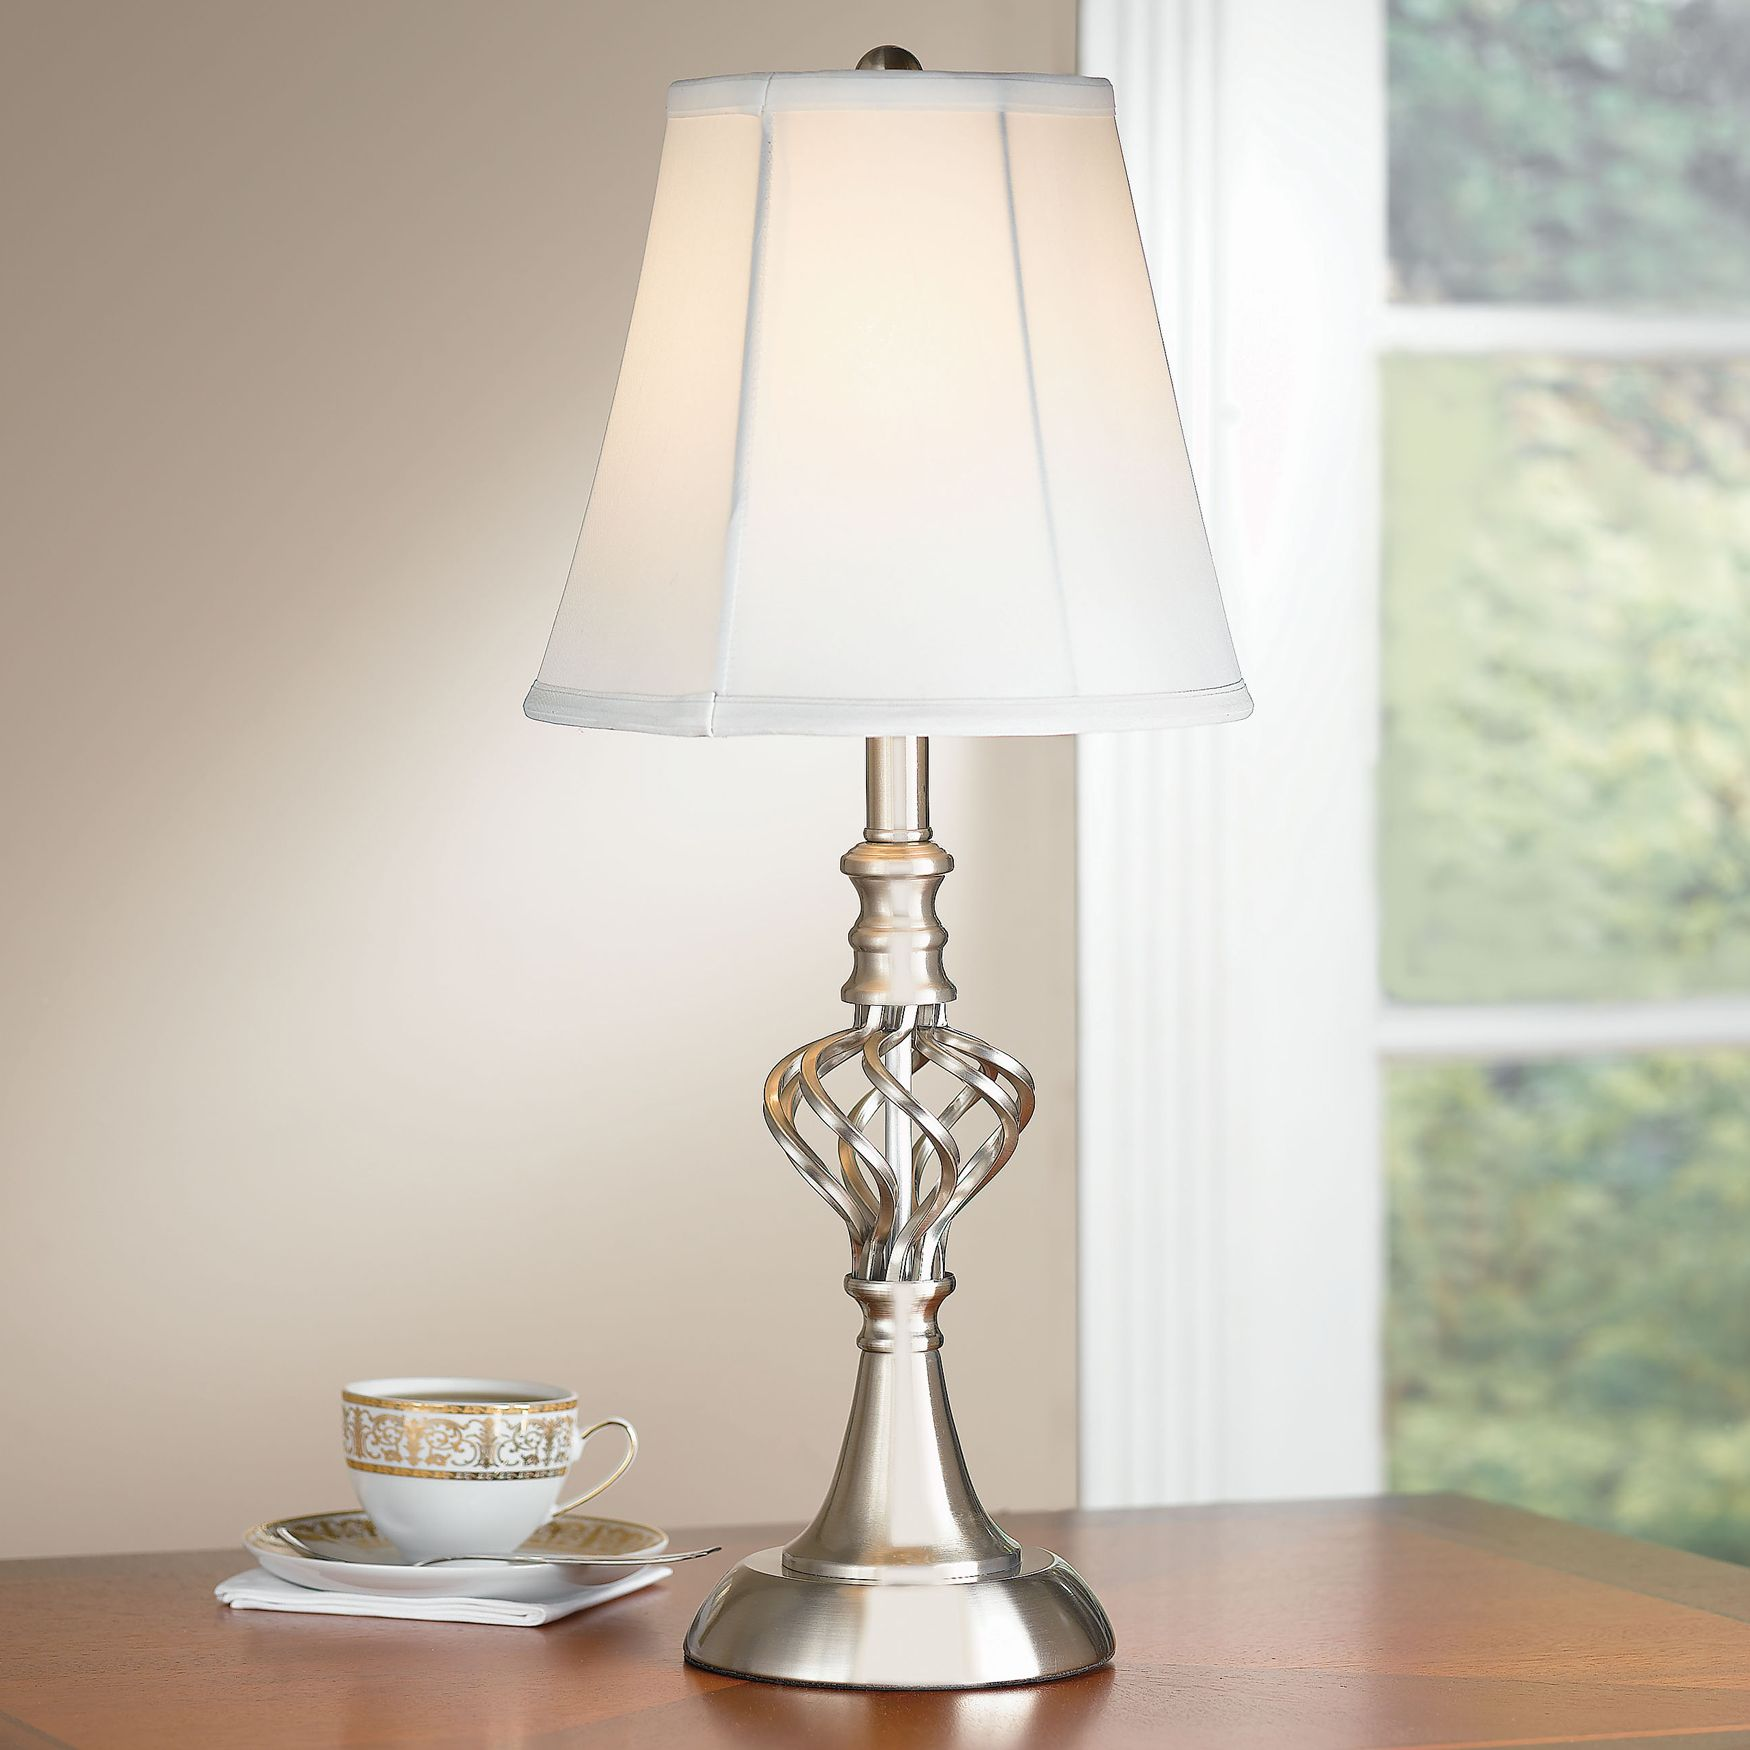 Polished Nickel u0026 Scroll Touch Table Lamp